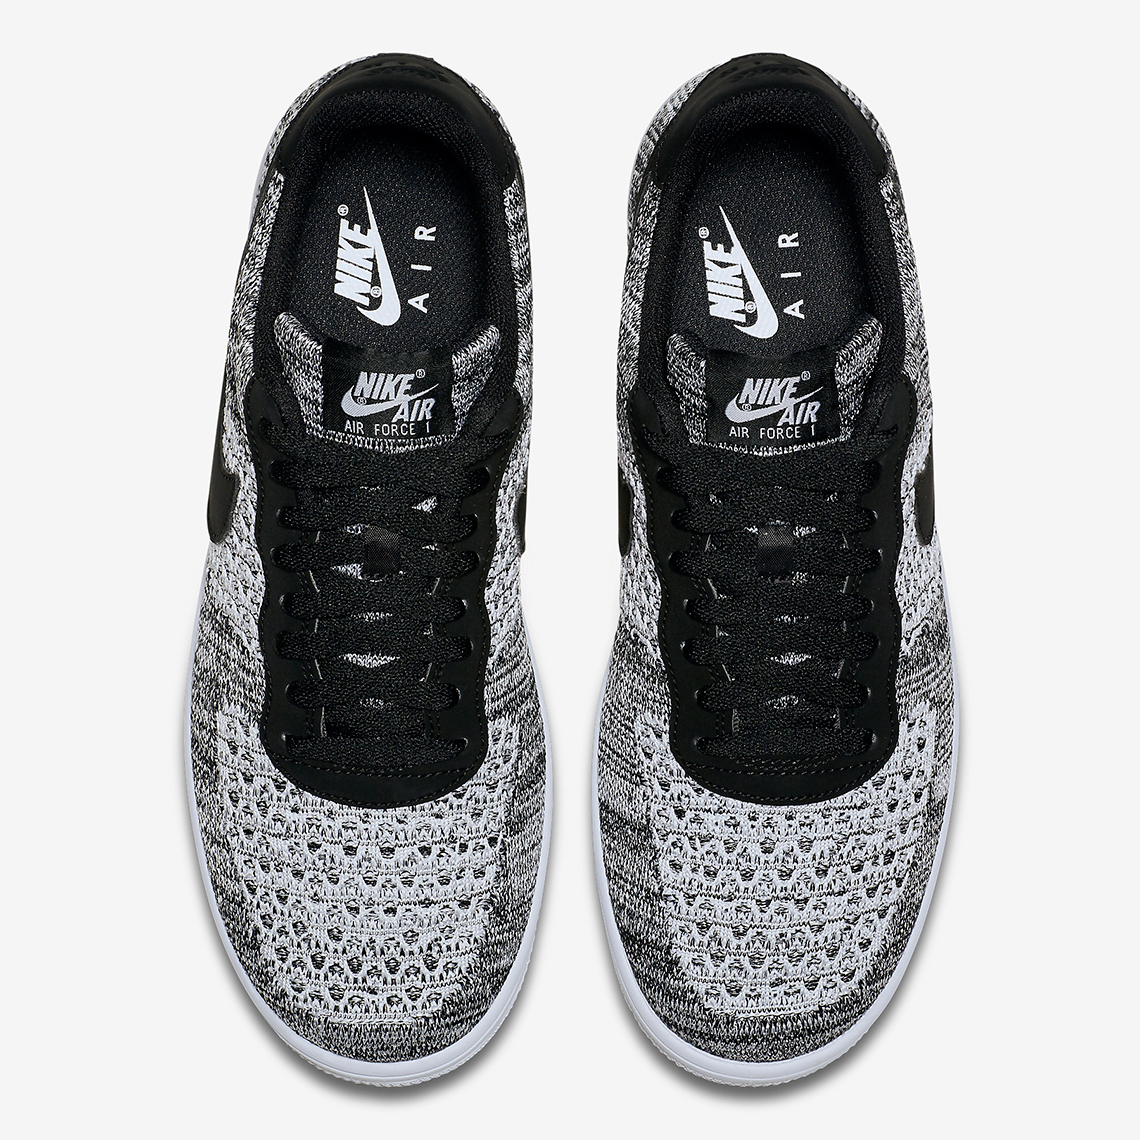 new style eb319 d31e6 Nike Air Force 1 Flyknit 2.0 Release Date + Info ...